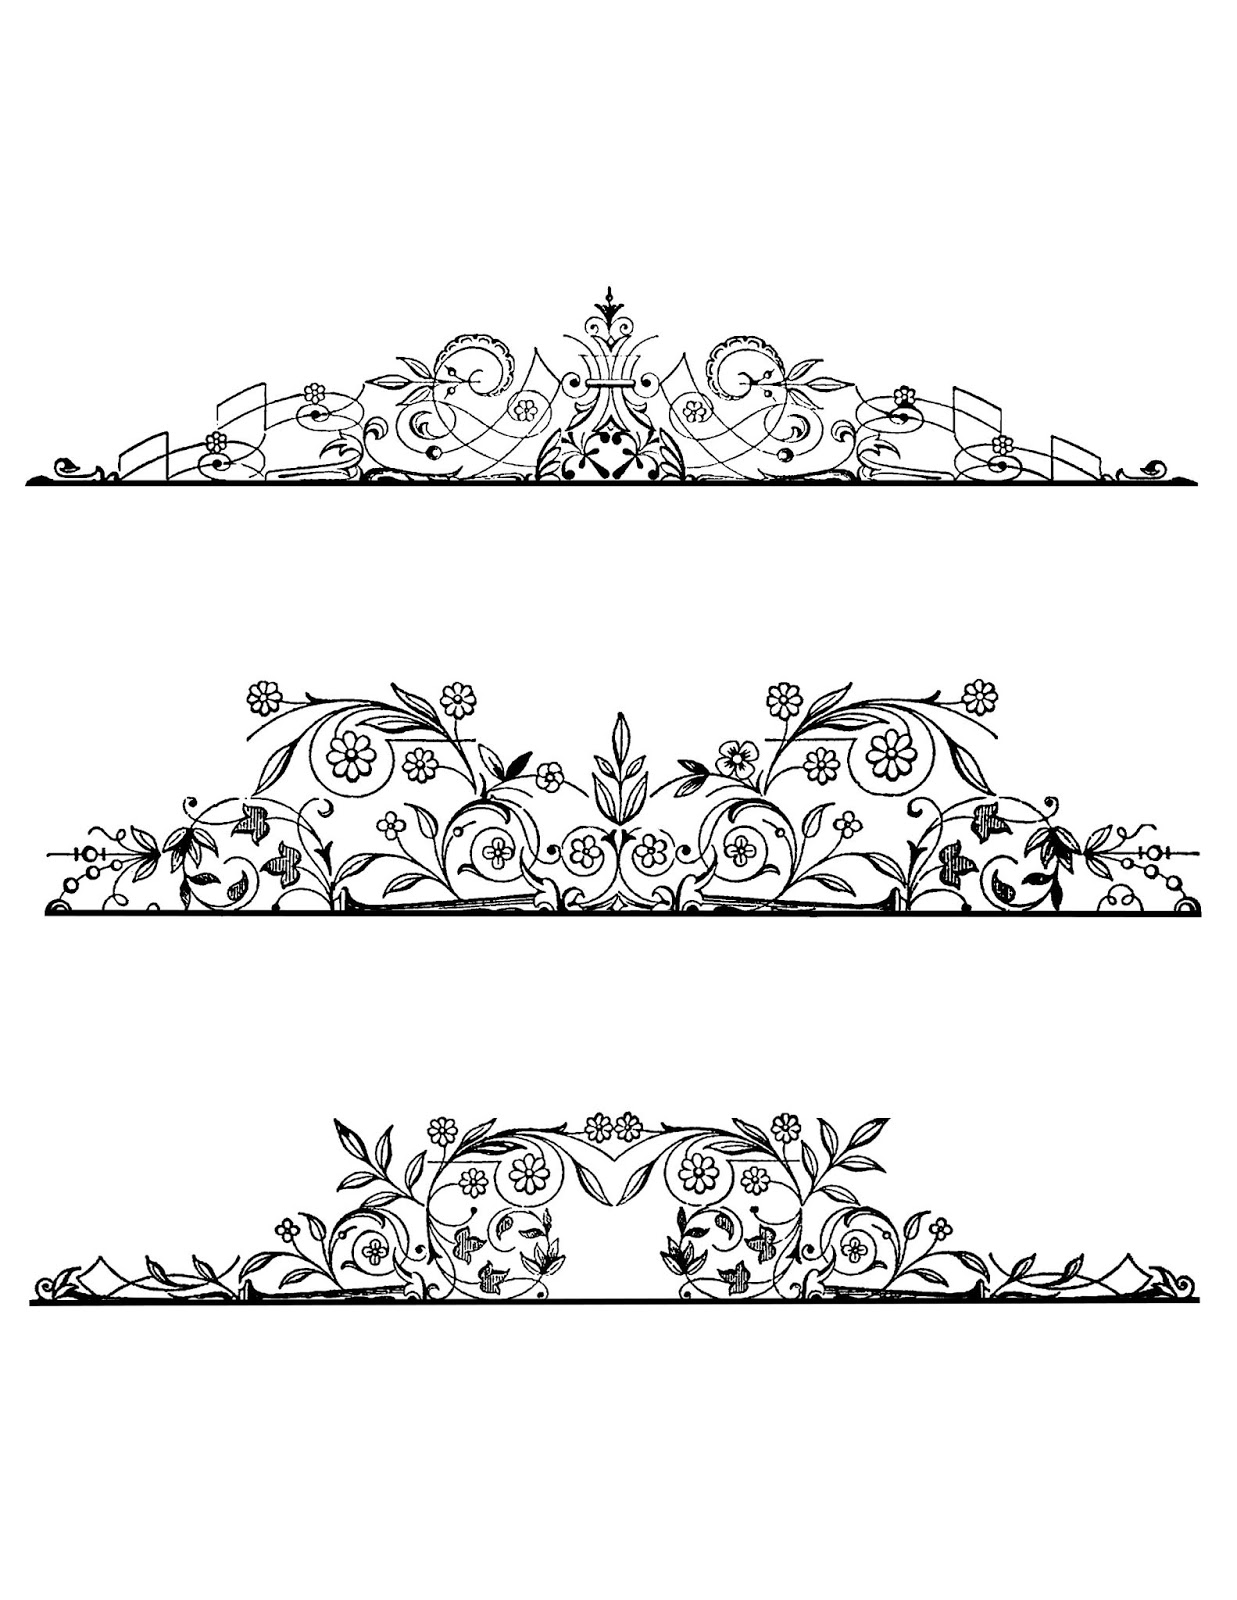 The Graphics Monarch: Free Clip Art Digital Page Text Divider Floral.